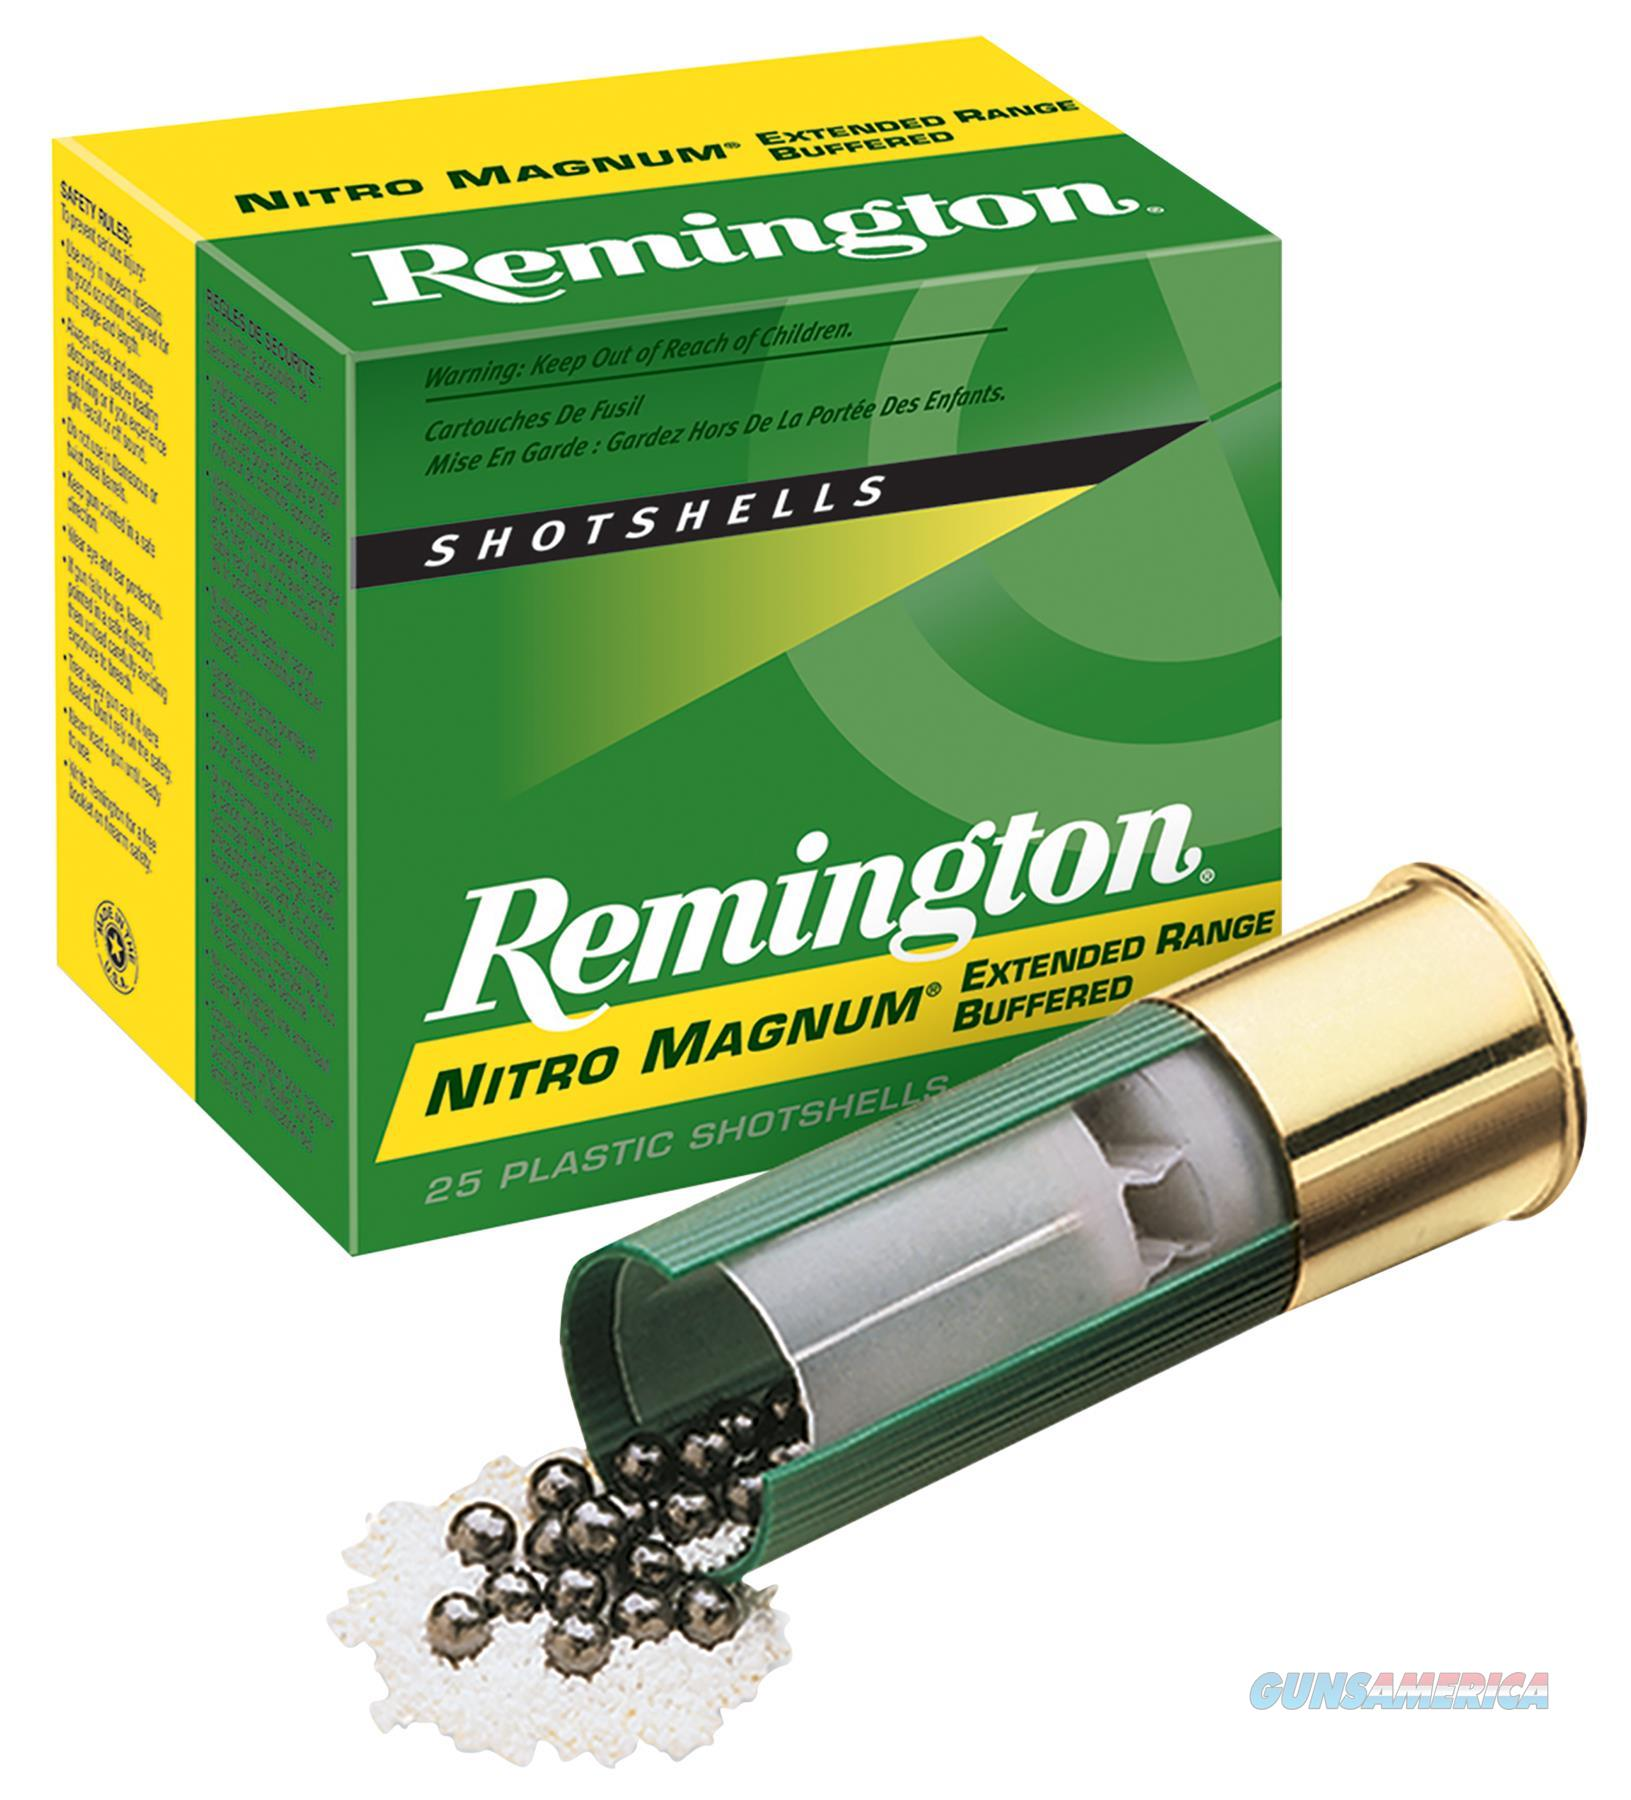 "Rem Nm20h4 Nitro Mag Loads 20 Ga 3"" 1-1/4 Oz 4 Shot 25Box/10Case NM20H4  Non-Guns > Ammunition"